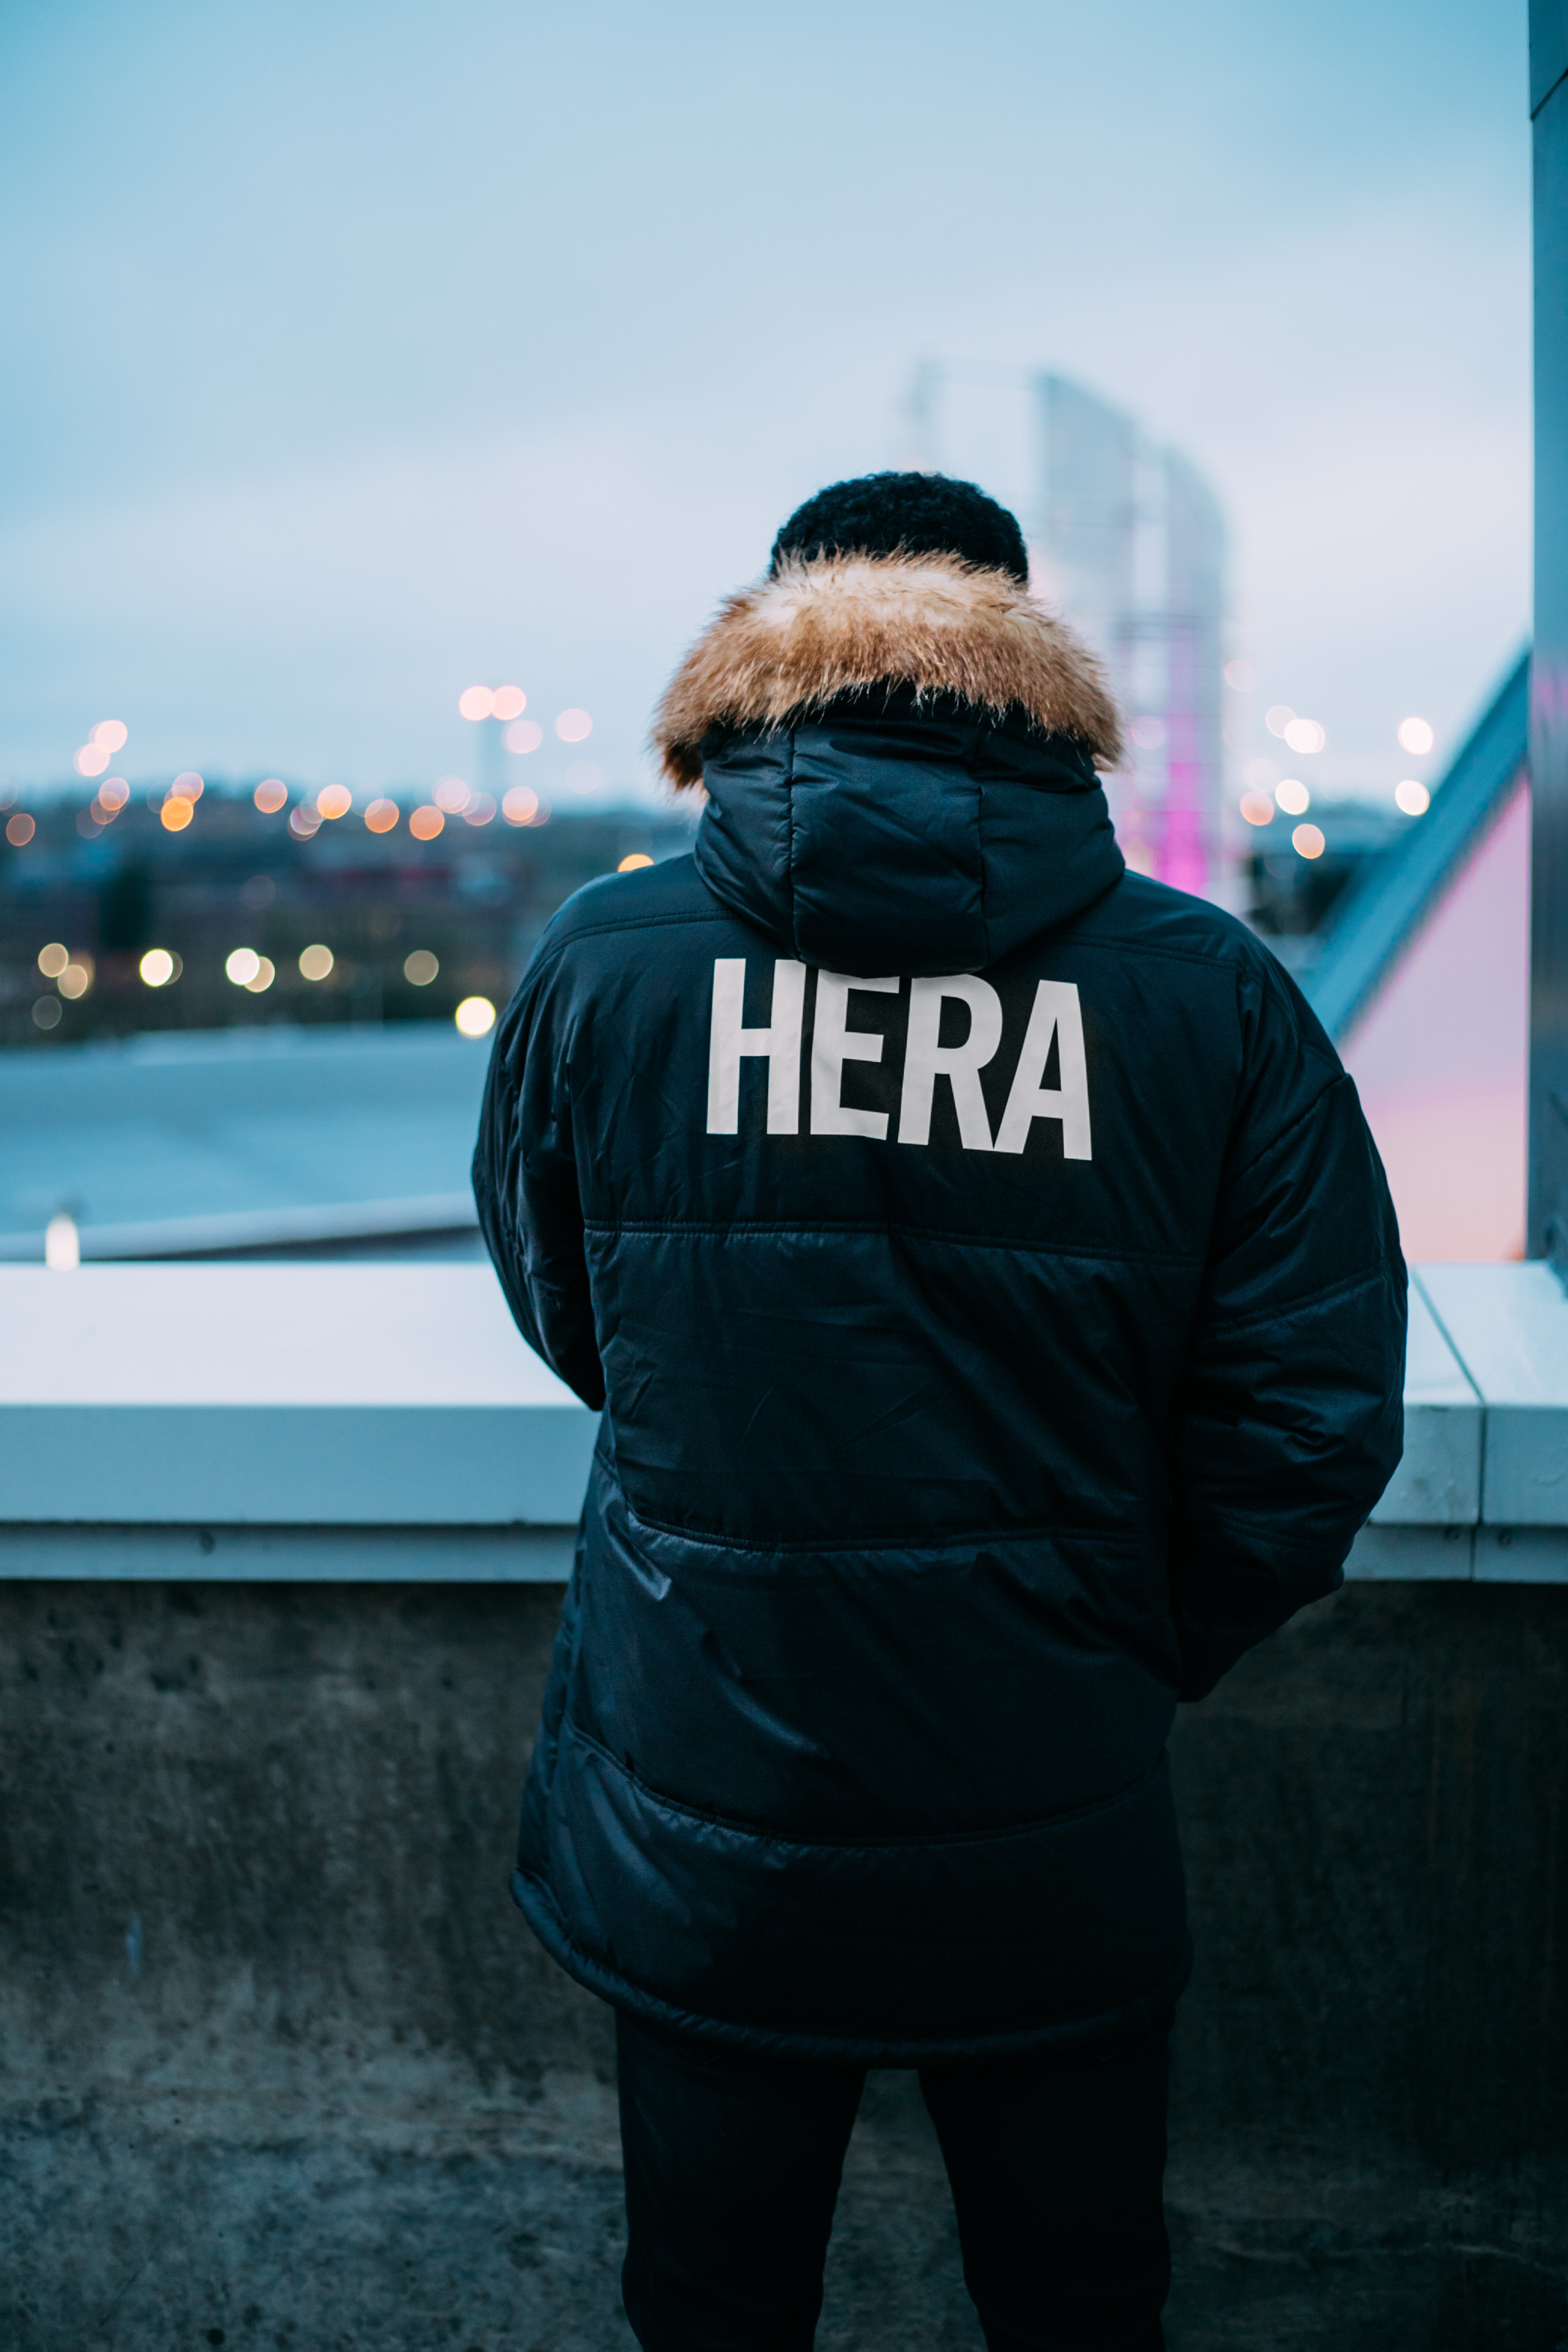 person wearing black and brown parka jacket with Hera-printed text standing facing the cities